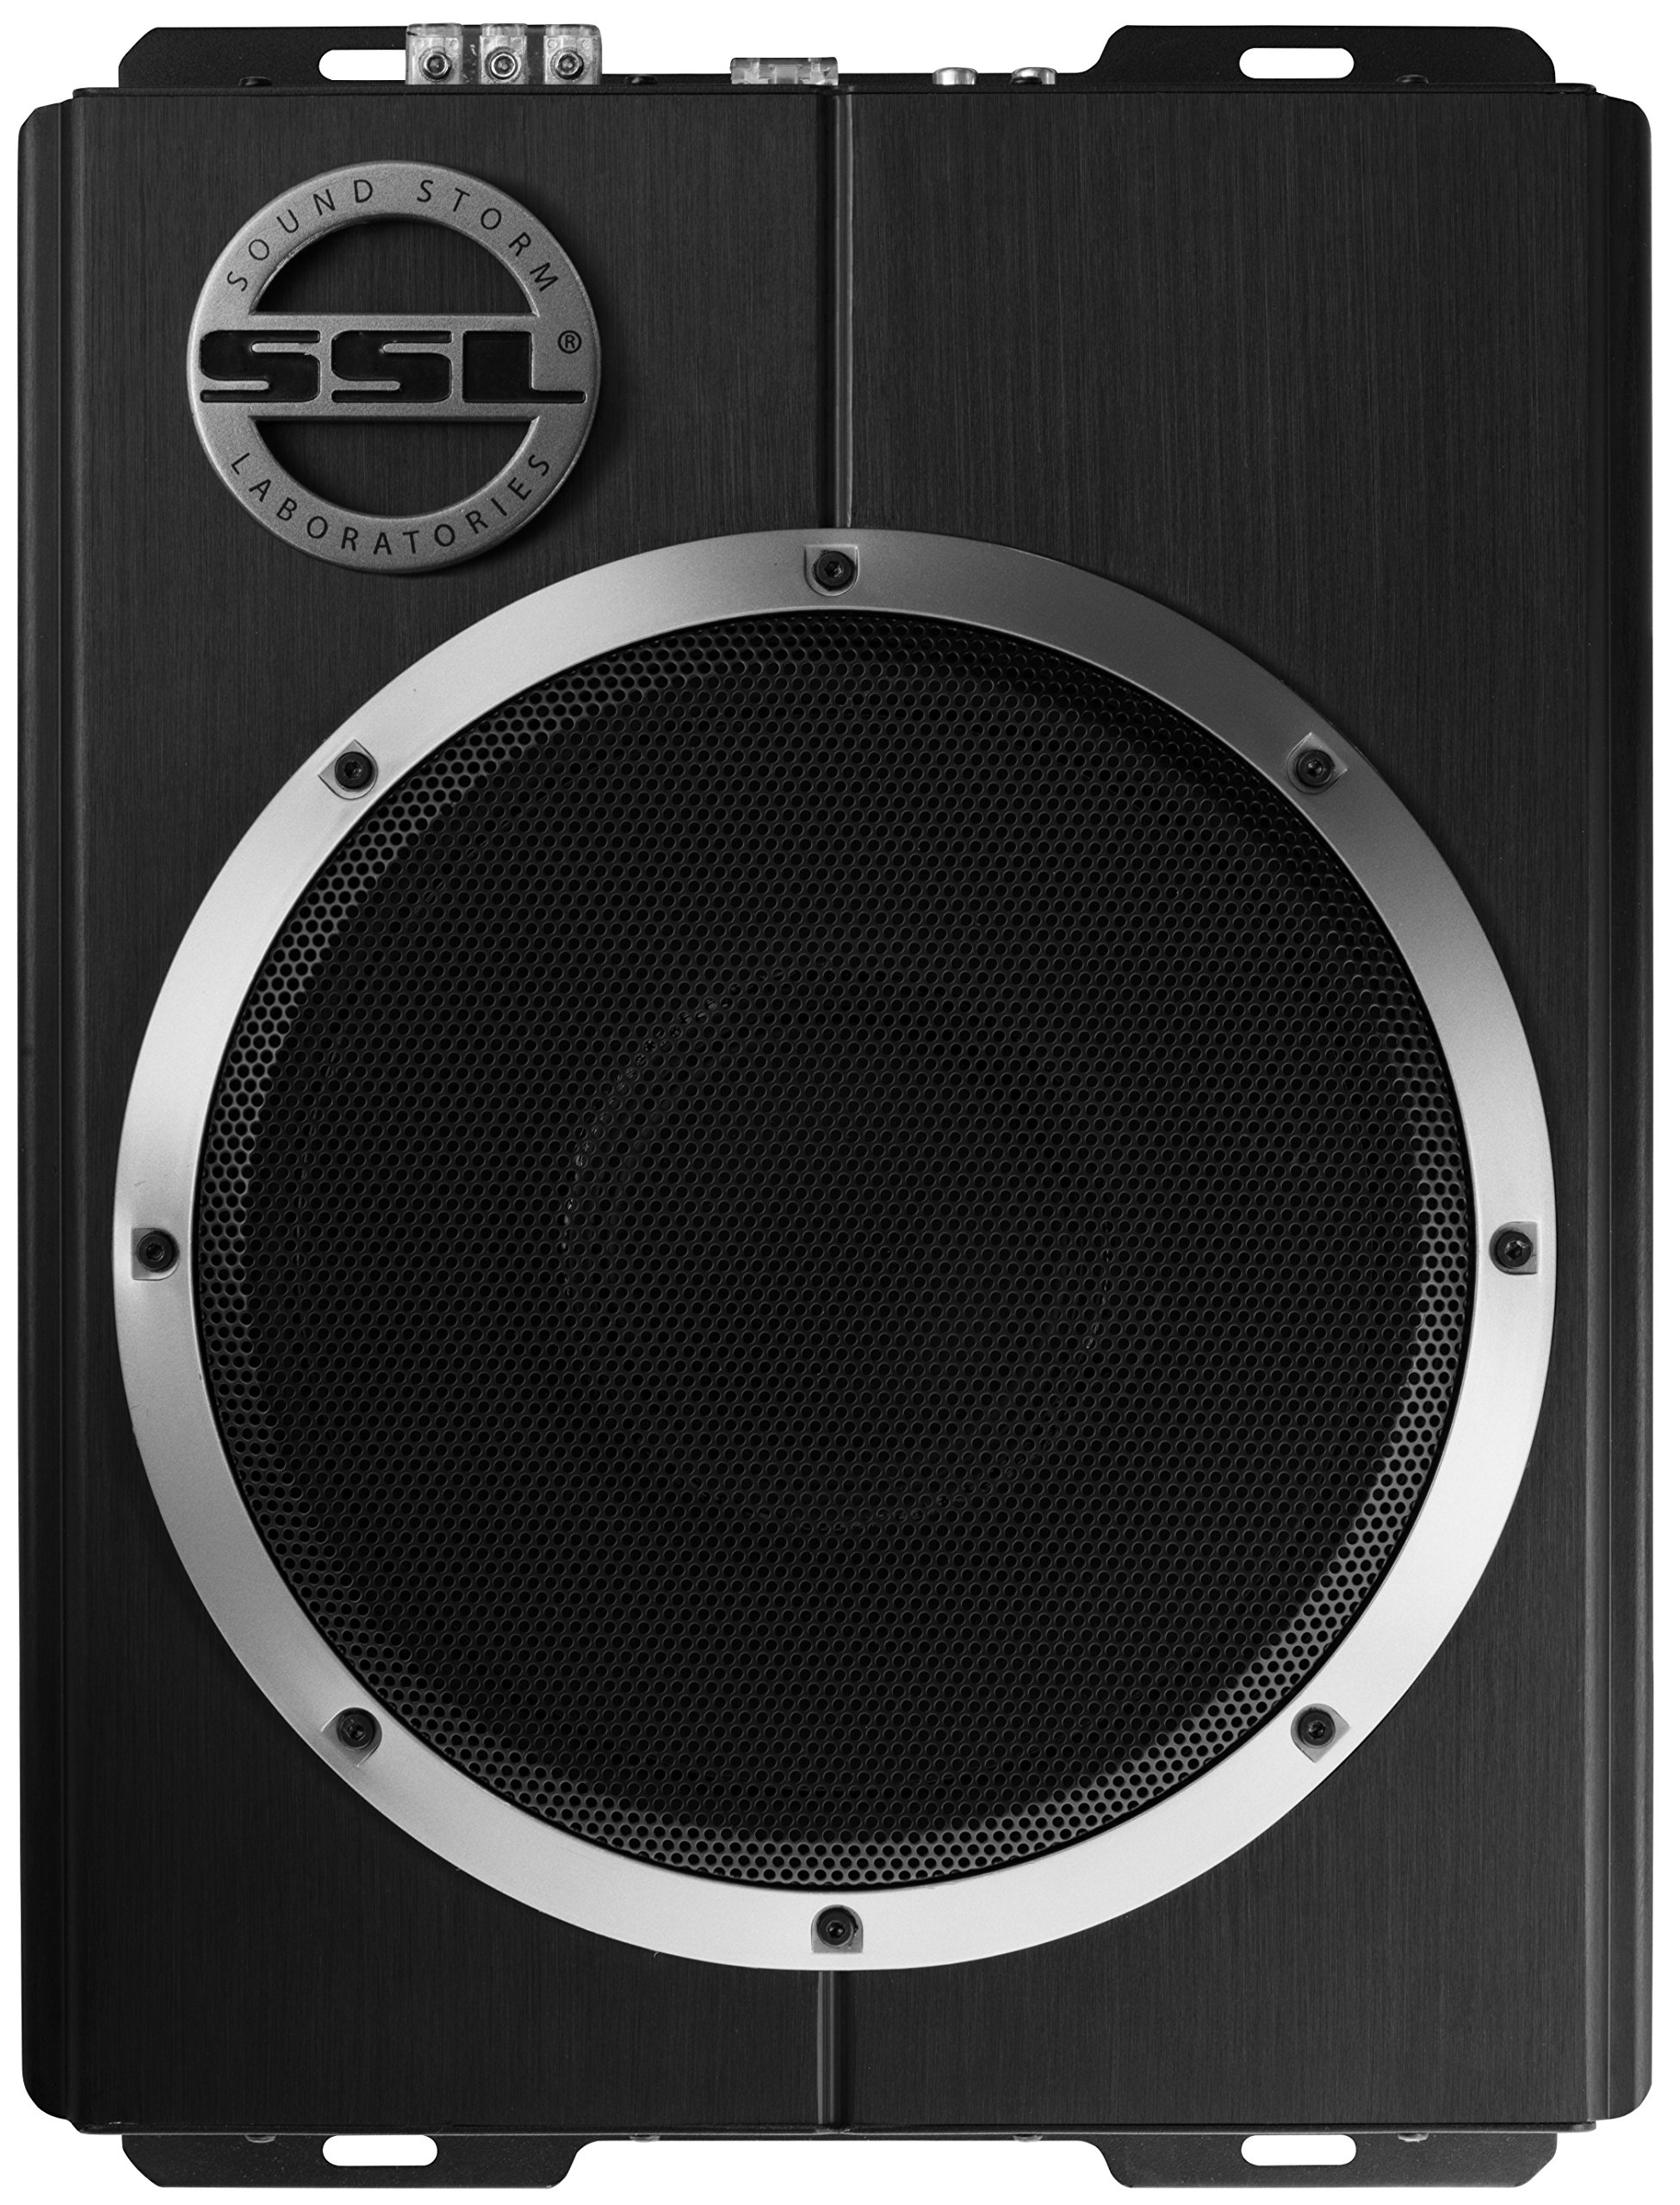 Sound Storm LOPRO10 1200 Watt Low Profile Amplified 10 Inch Car Subwoofer with Remote Subwoofer Control